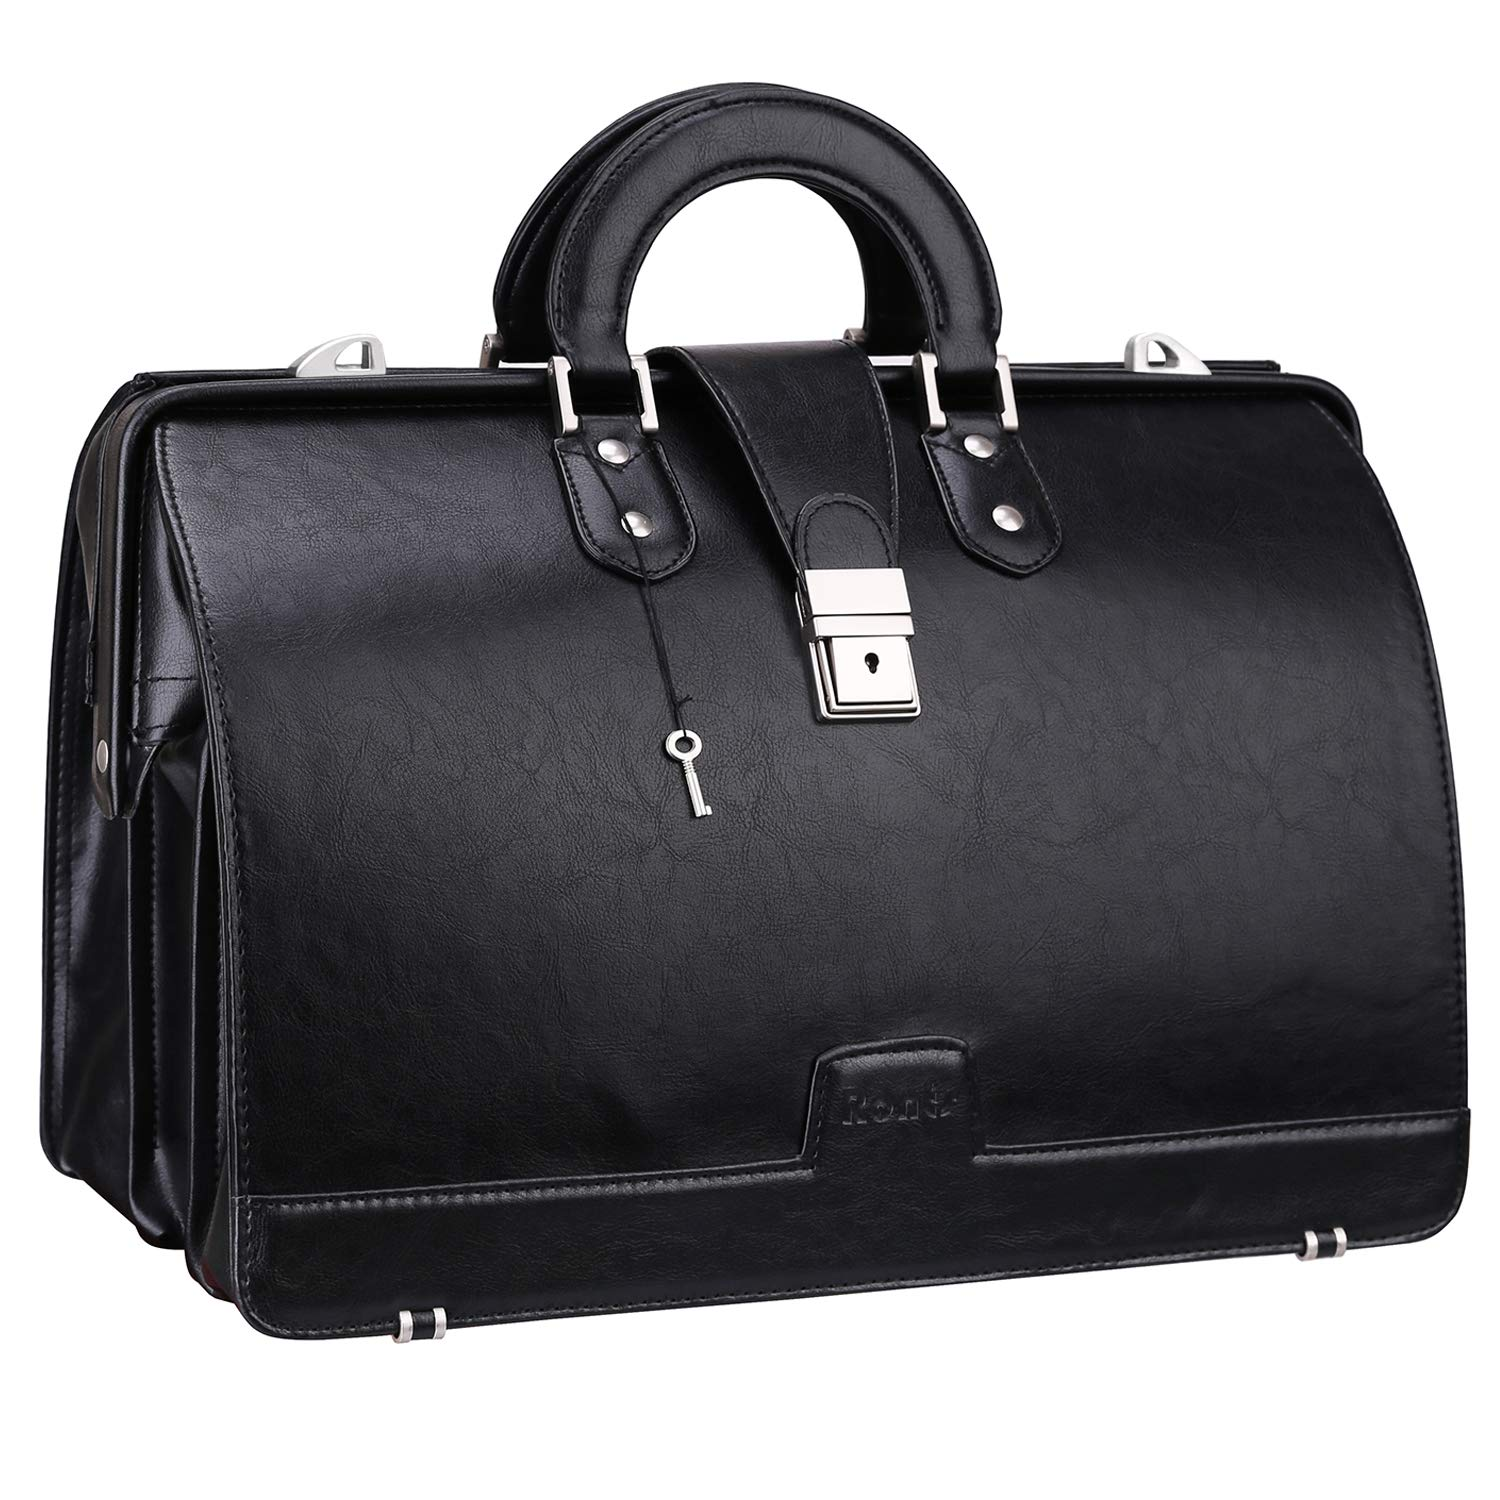 Ronts Lawyer's PU Leather Briefcase 15.6 Inch Laptop Bag Shoulder Bag Attach Case for Men Women, Black